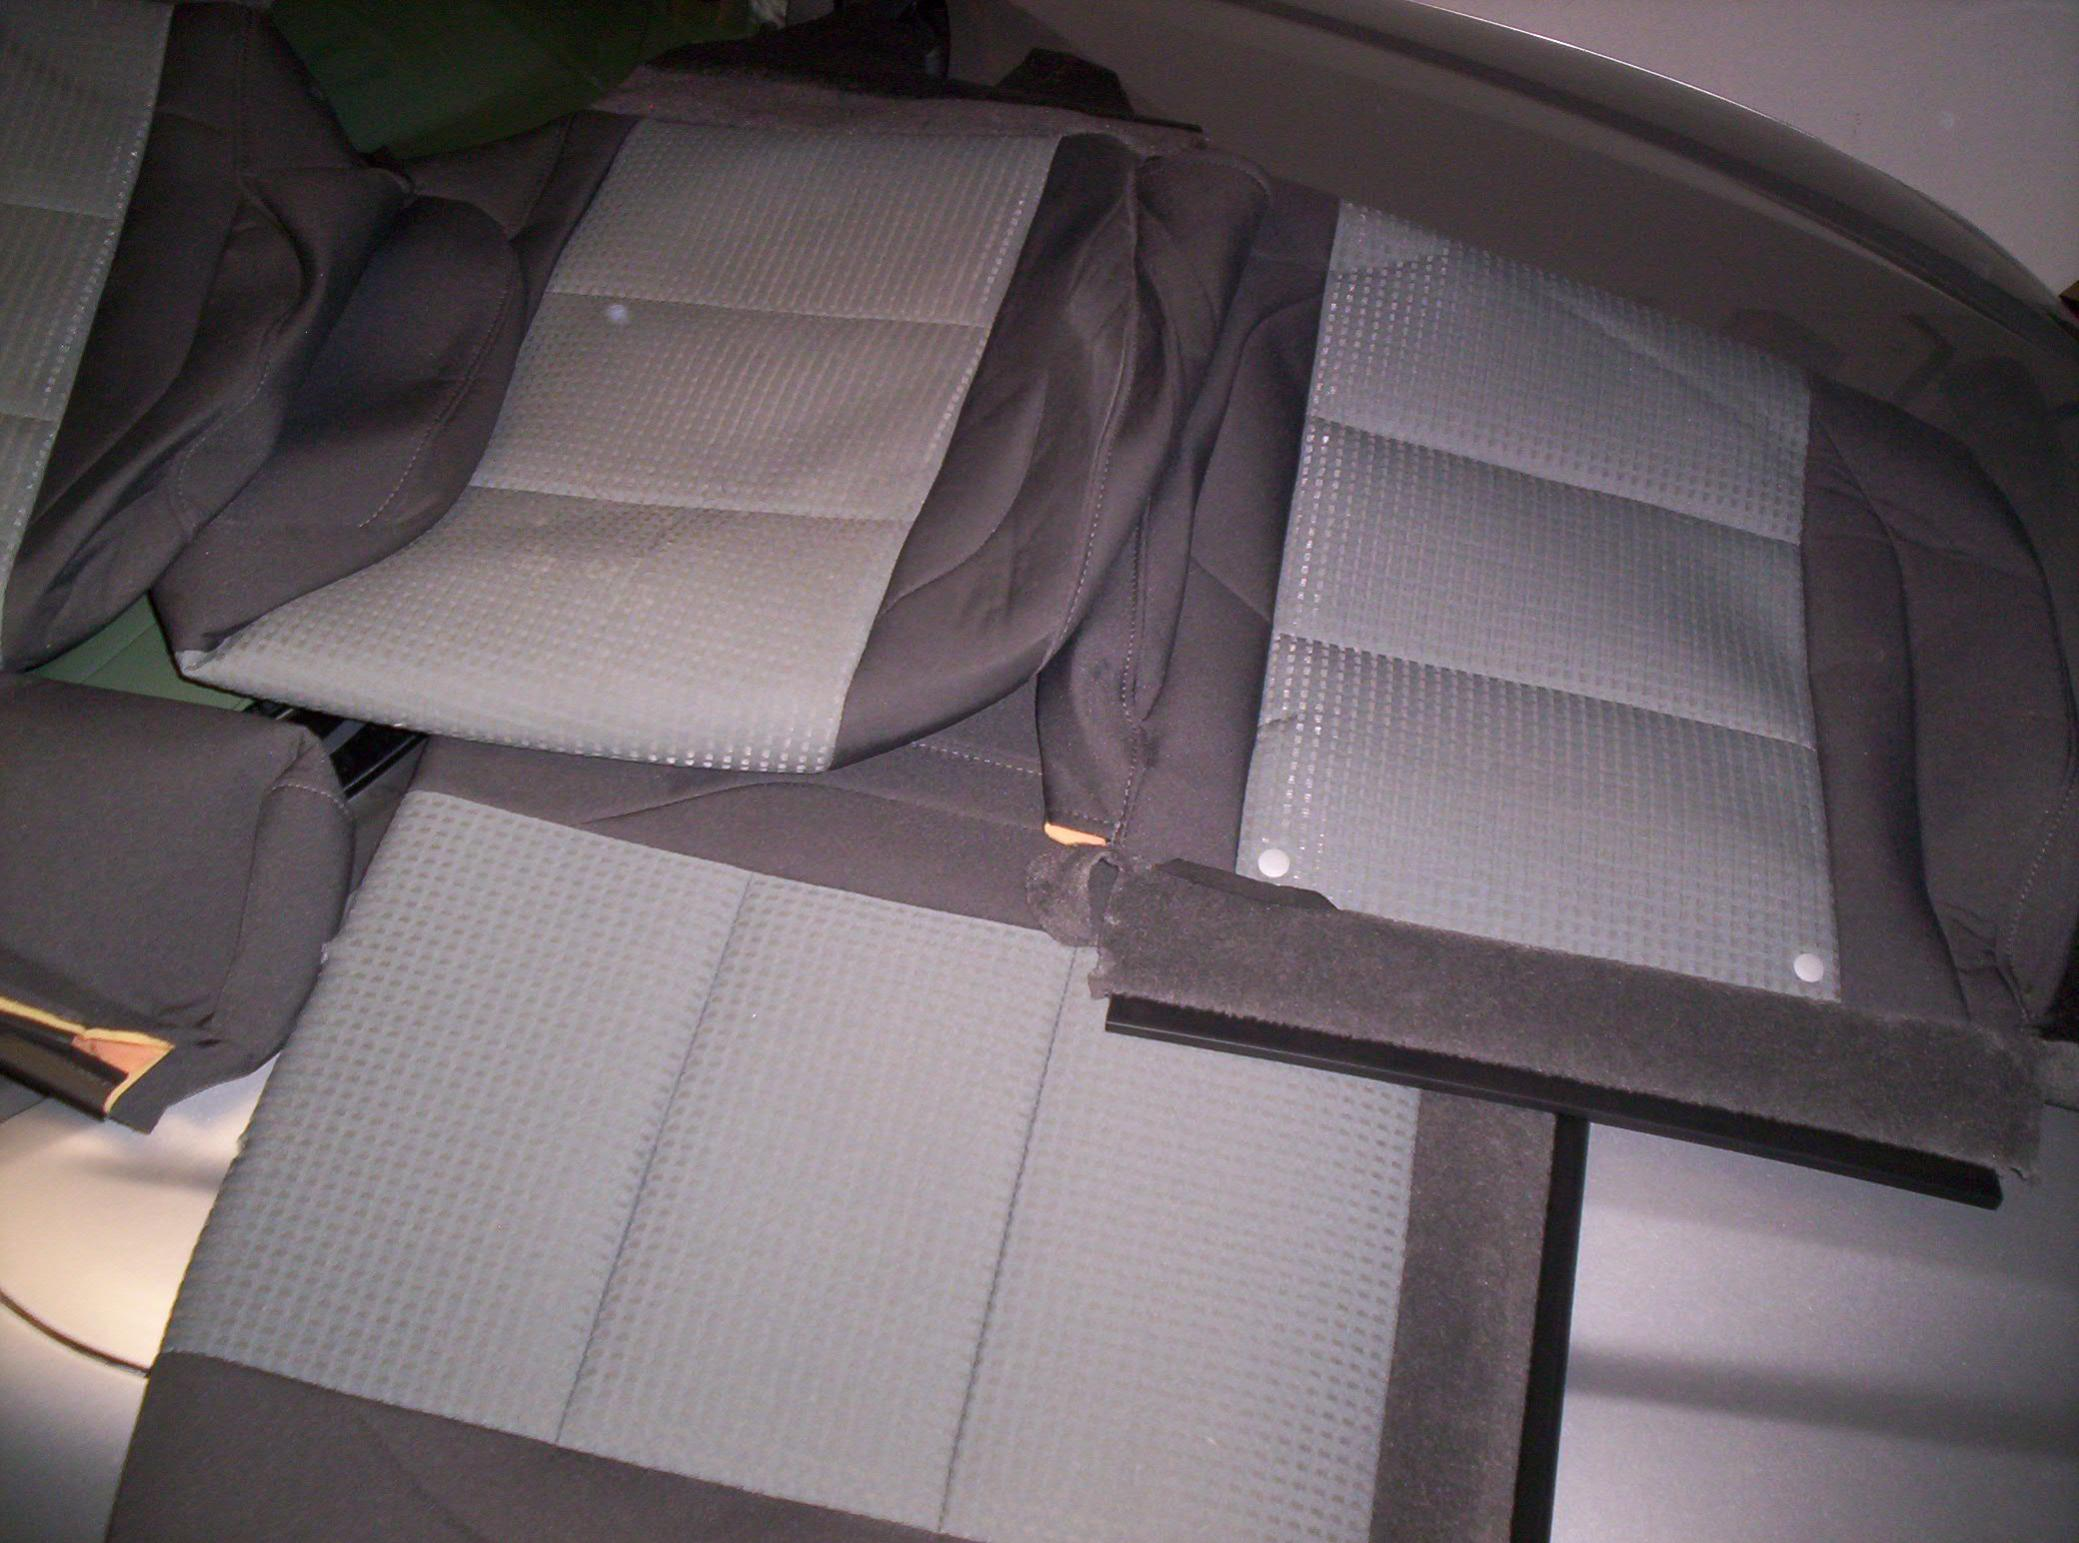 Original OEM Cloth Seat Covers For Titan King Cab W Bench Seats 000 0122